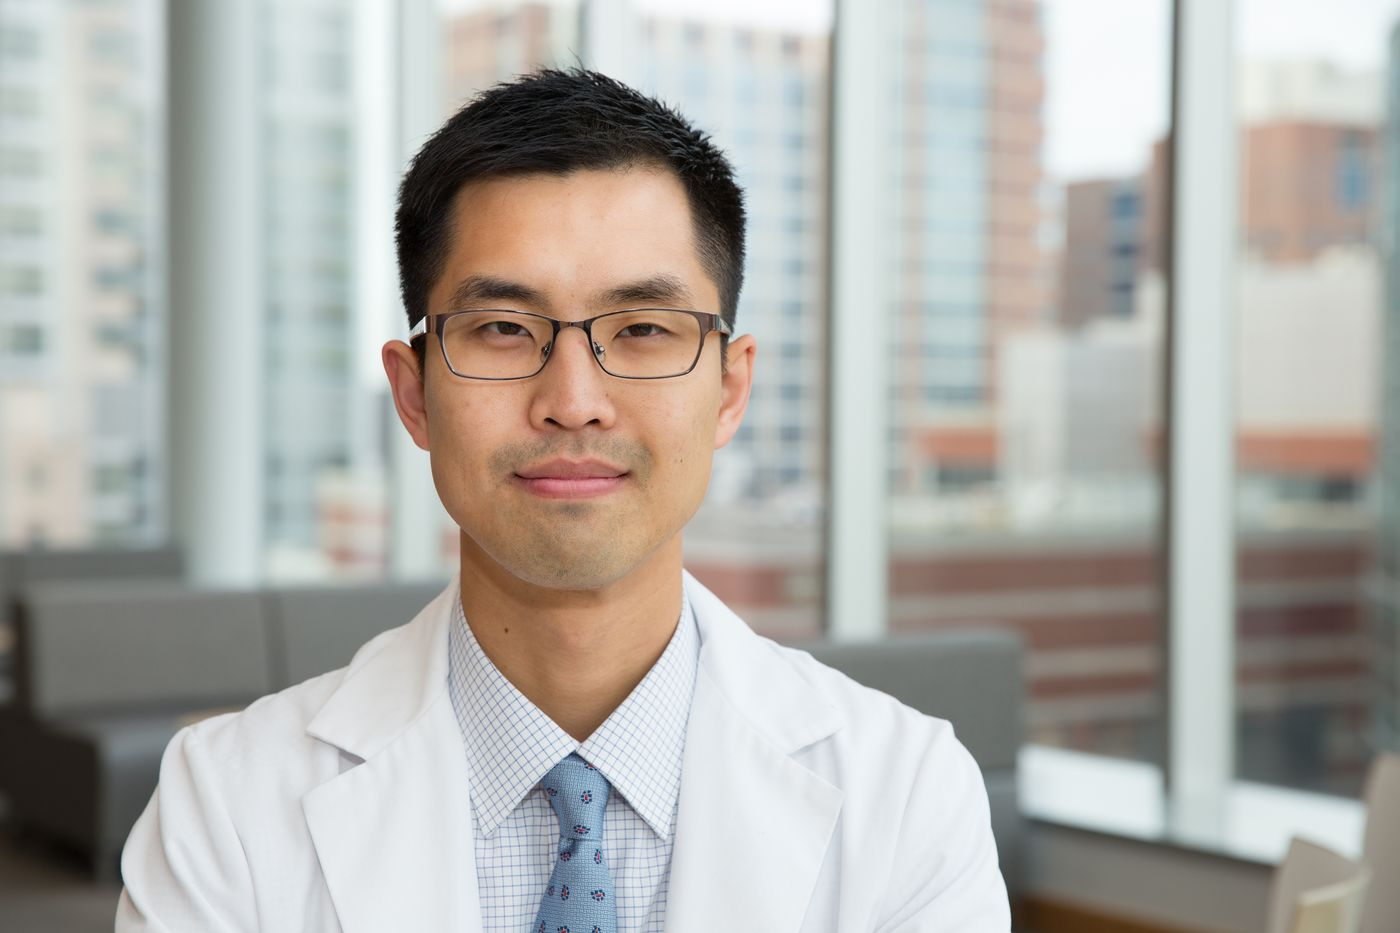 Surgeon in training relishes complex patients, but learns valuable lessons in ordinary cases